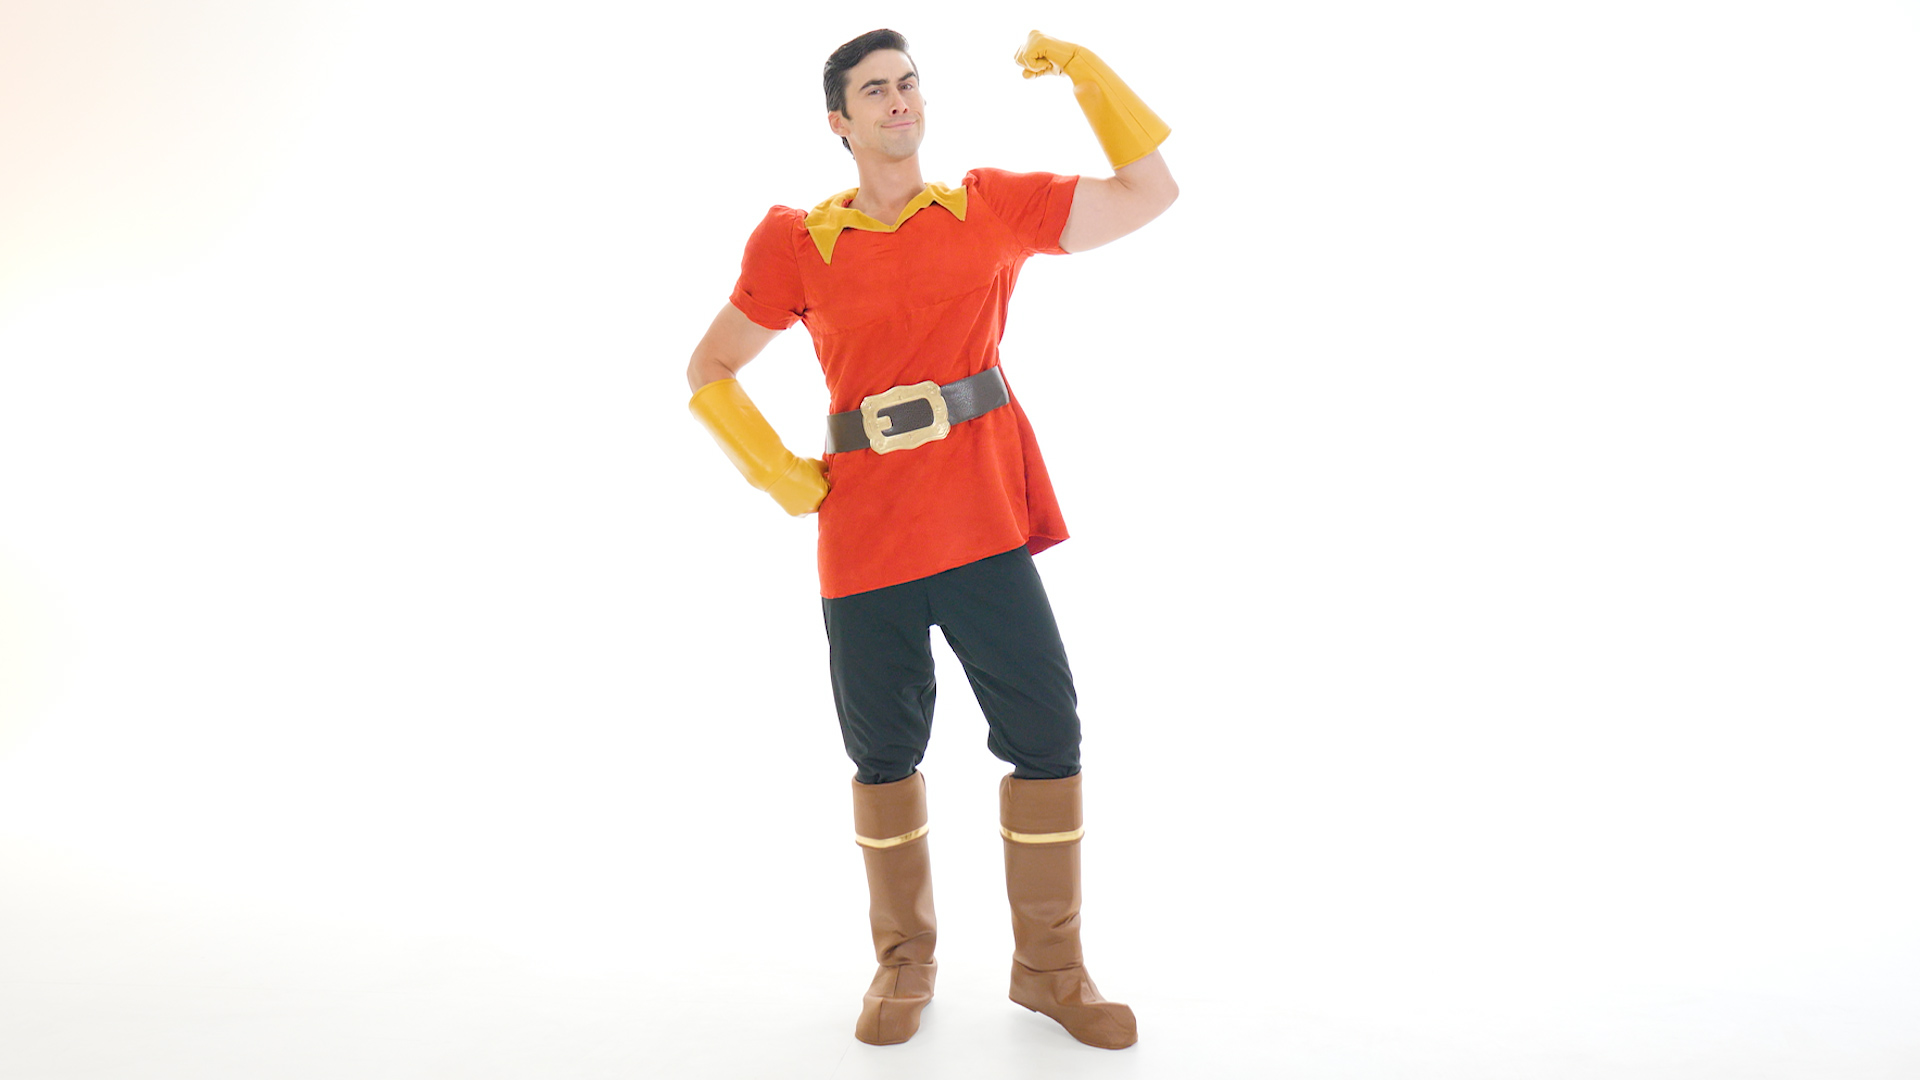 Disney Beauty and the Beast Gaston Costume for Men